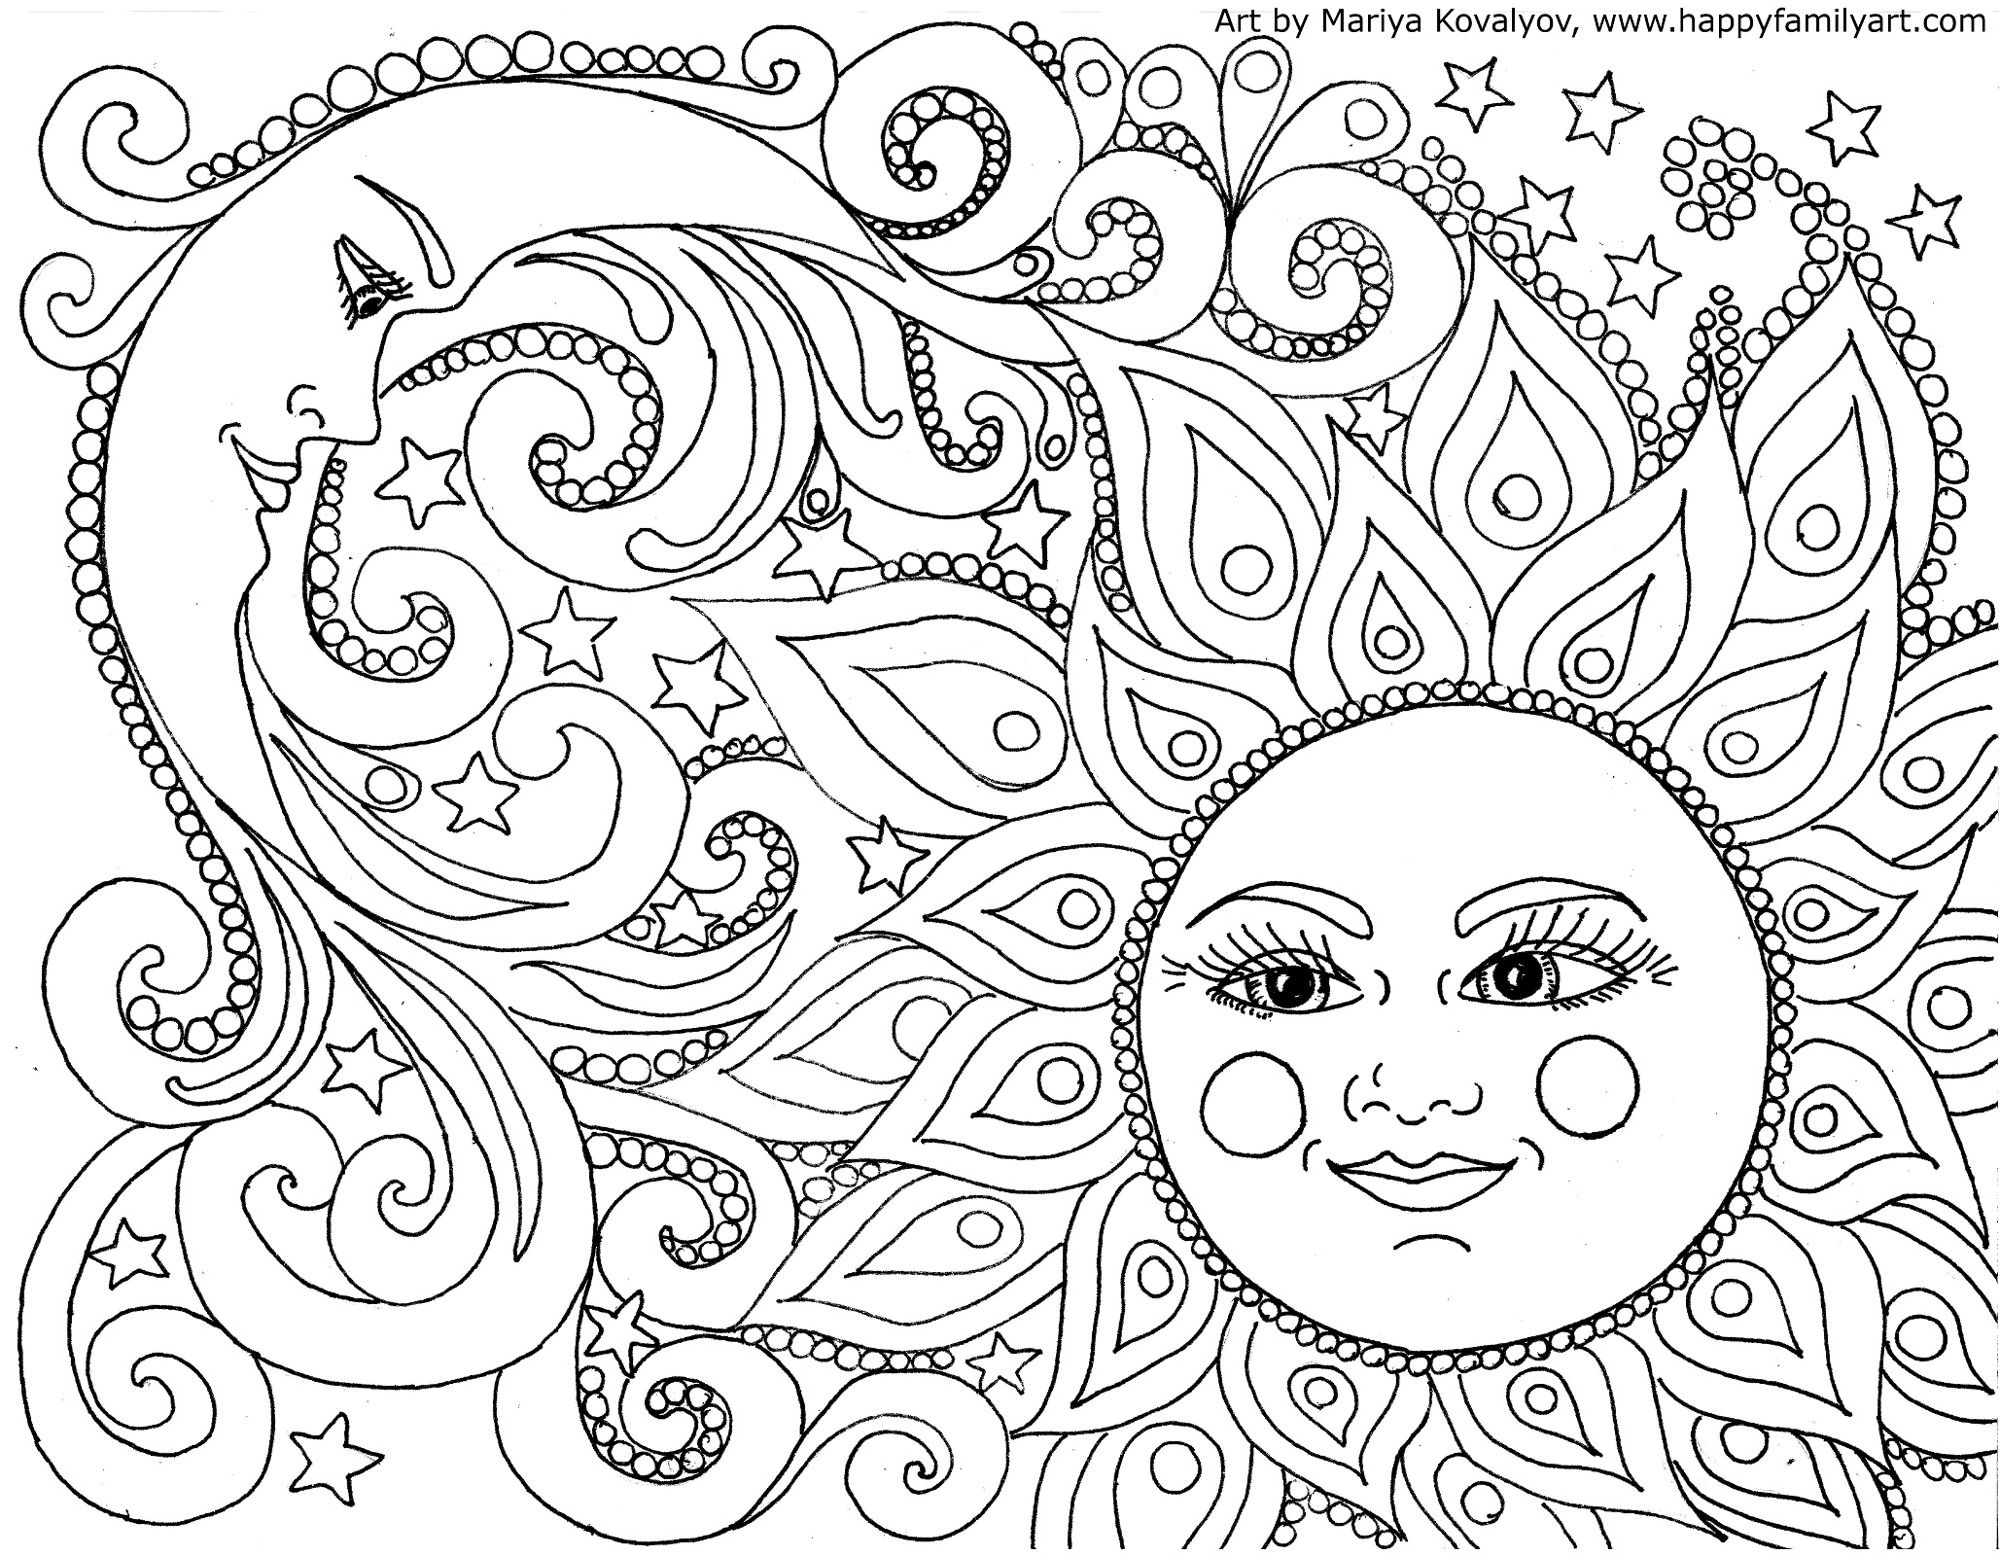 free printable coloring pages for adults zen : I Made Many Great Fun And Original Coloring Pages Color Your Heart Out